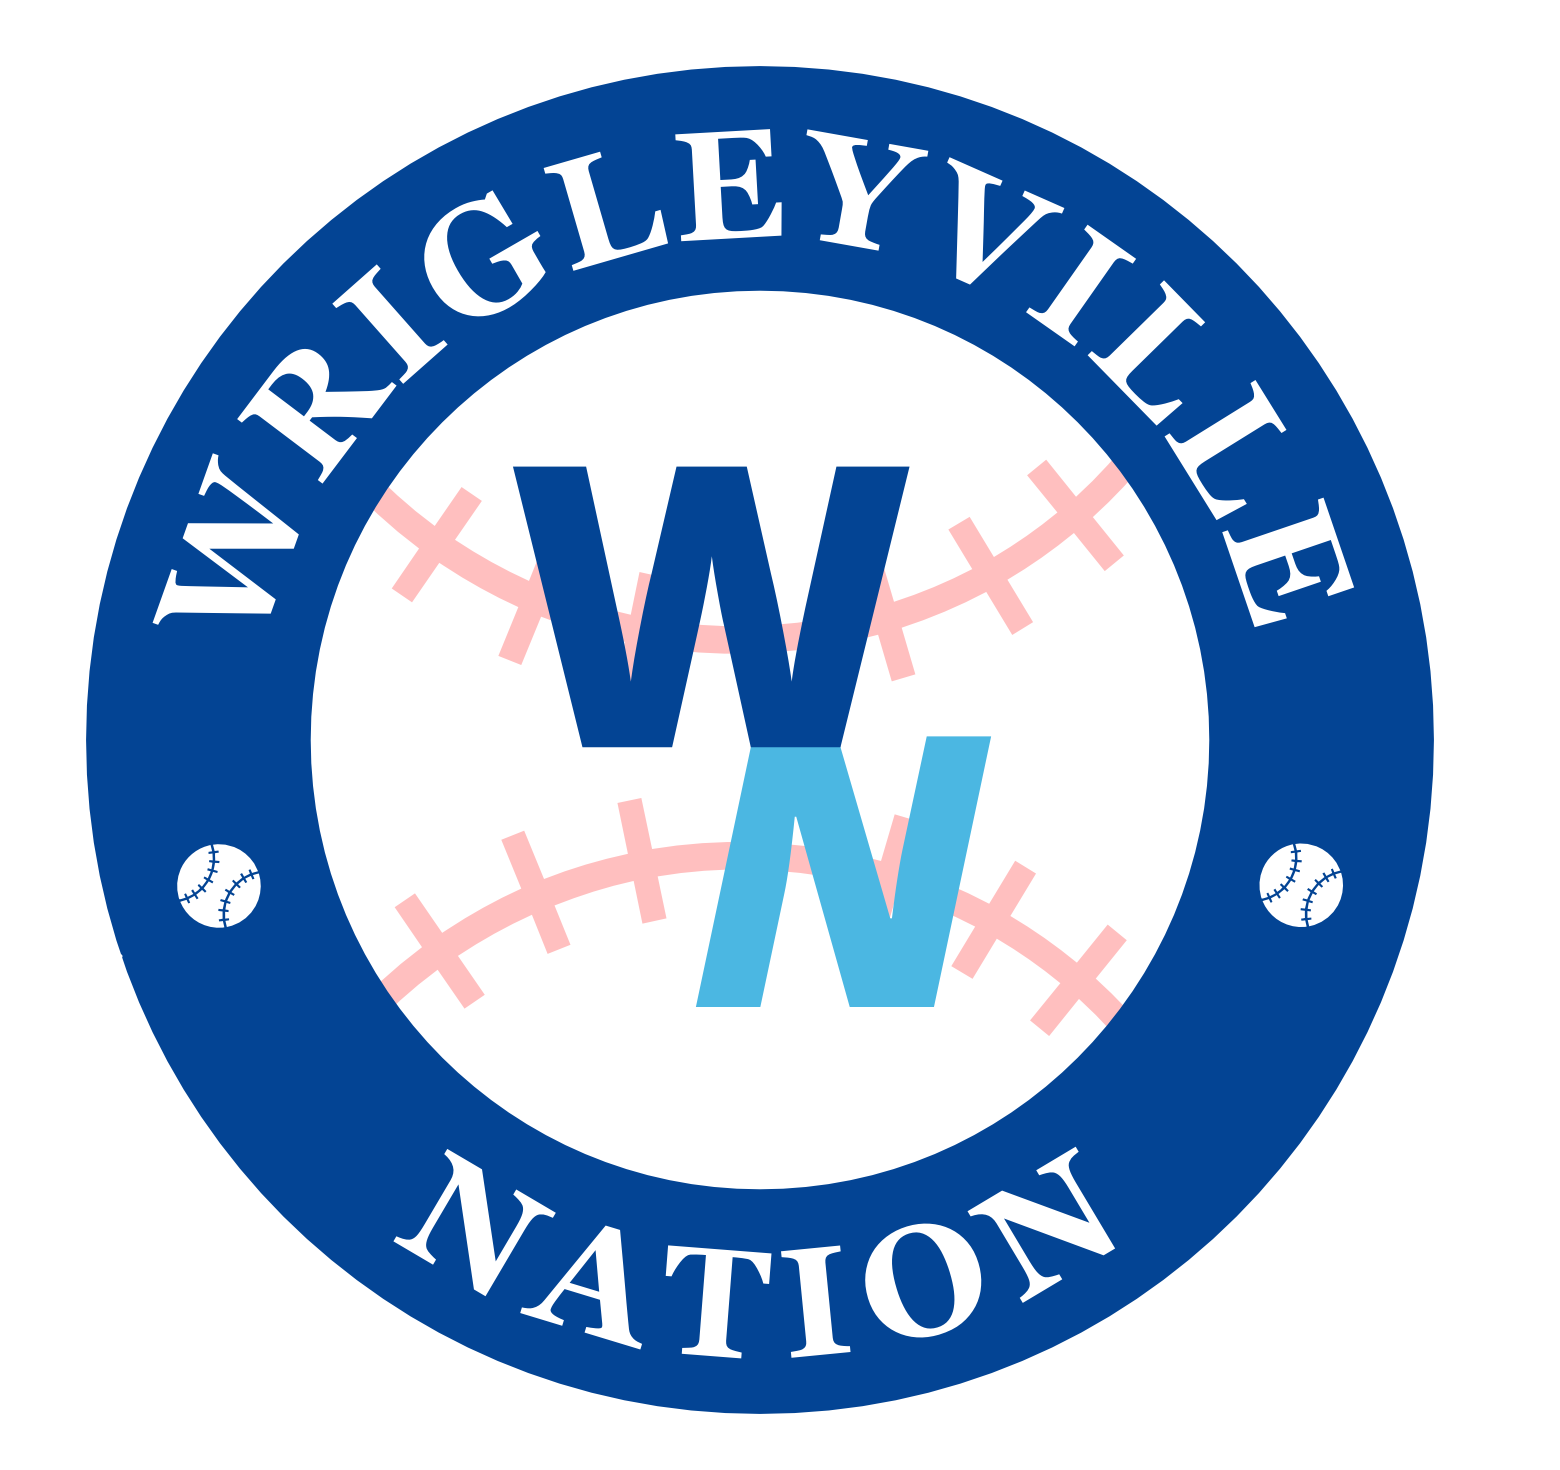 Wrigleyville Nation Ep 229 - Guest: Michael Ernst, Cubs Losing Streak, Hitting Struggles, & More show art